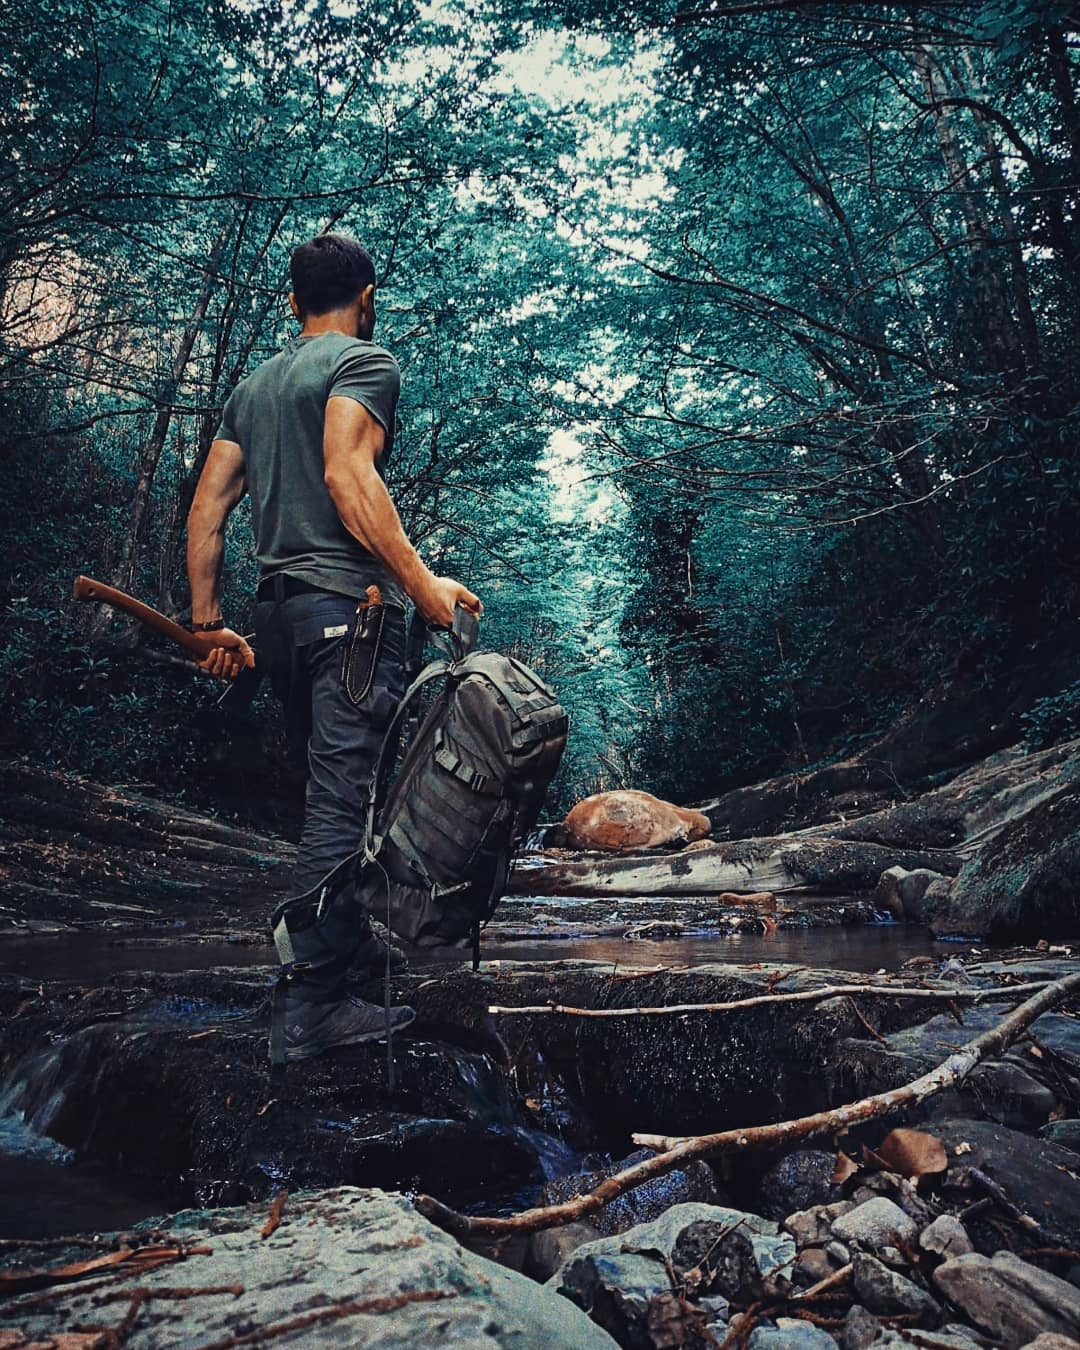 man walking through forest carrying survival gear